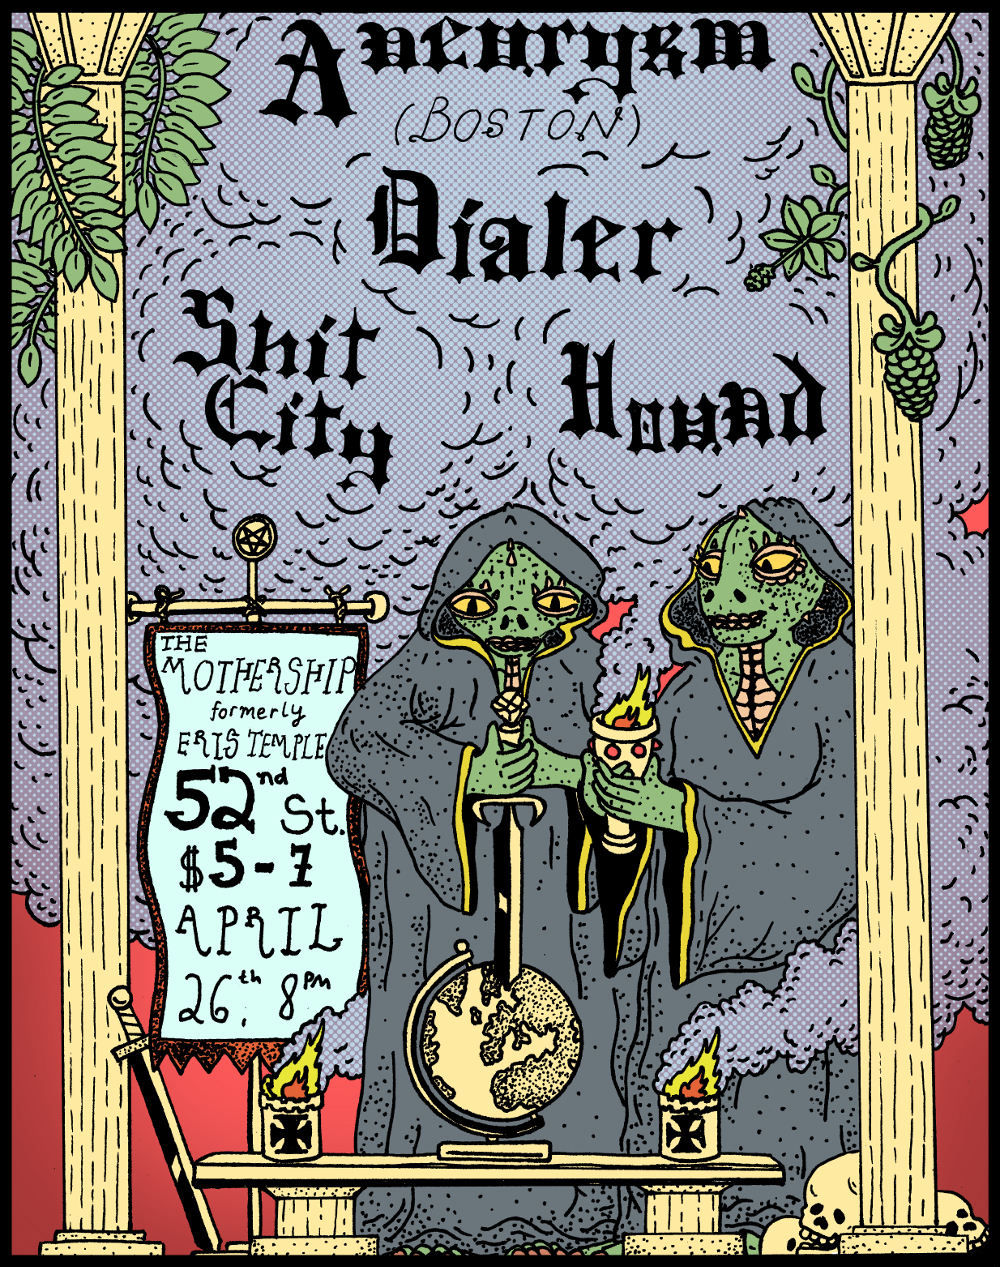 Show poster for Shit City